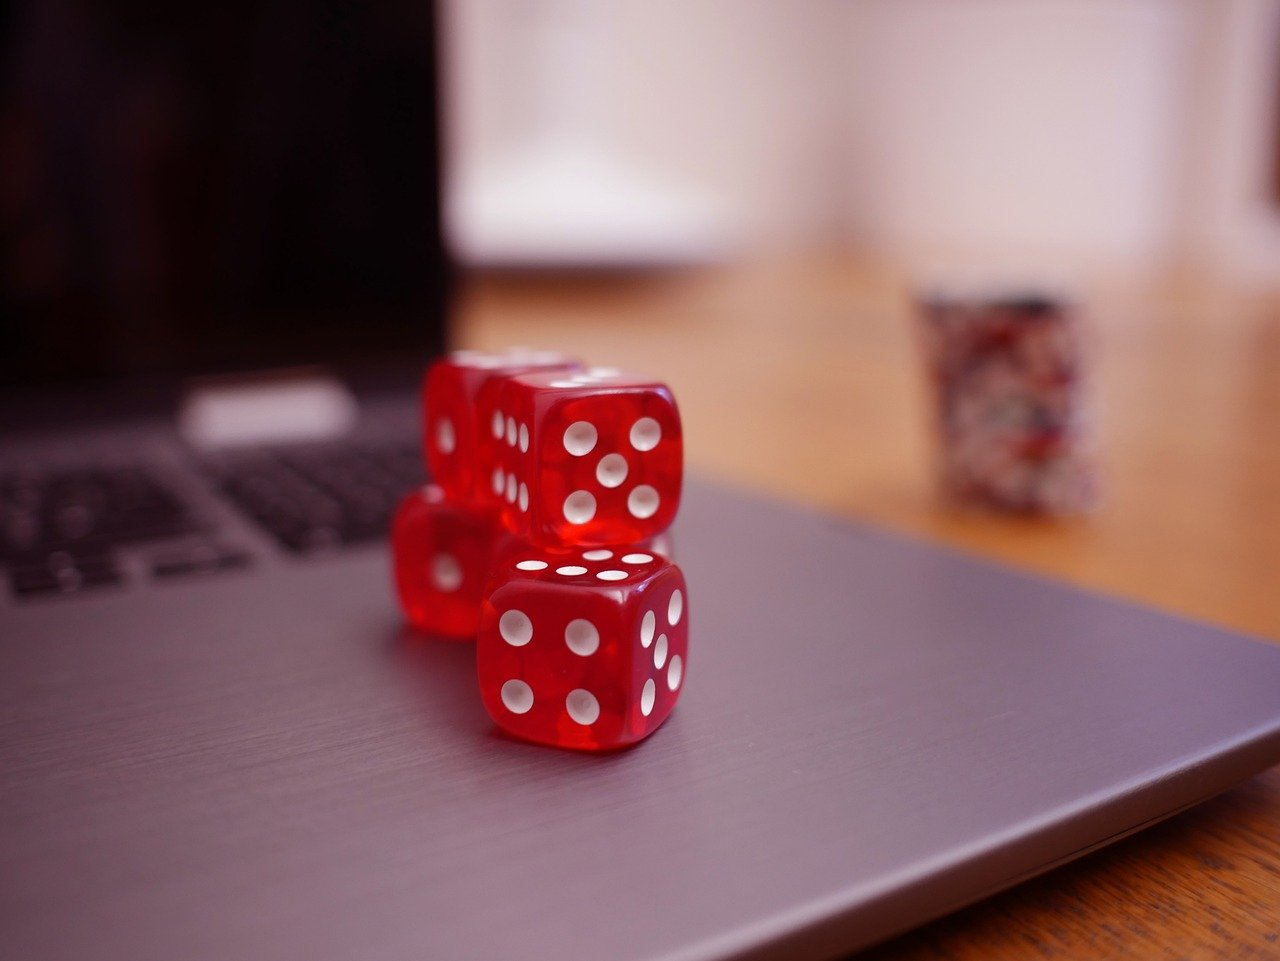 How are bonuses considered the most crucial benefit of online casinos? Discuss 3 bonuses